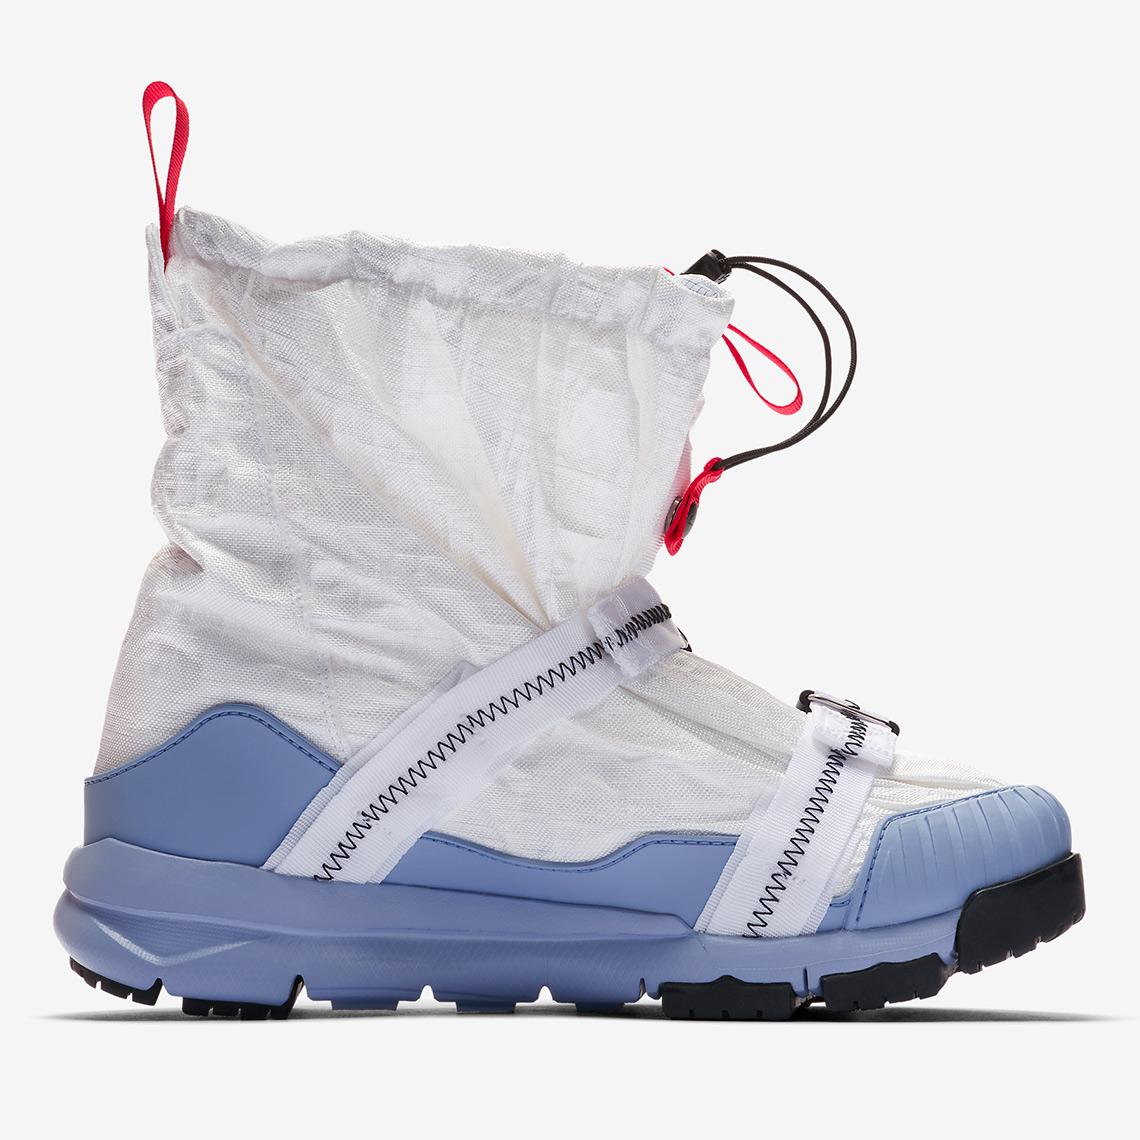 1bbb0f730b4 Tom Sachs x Nike Mars Yard Overshoe Release Date  January 2019  550. Color   White Cobalt Bliss-Sport Red-Black